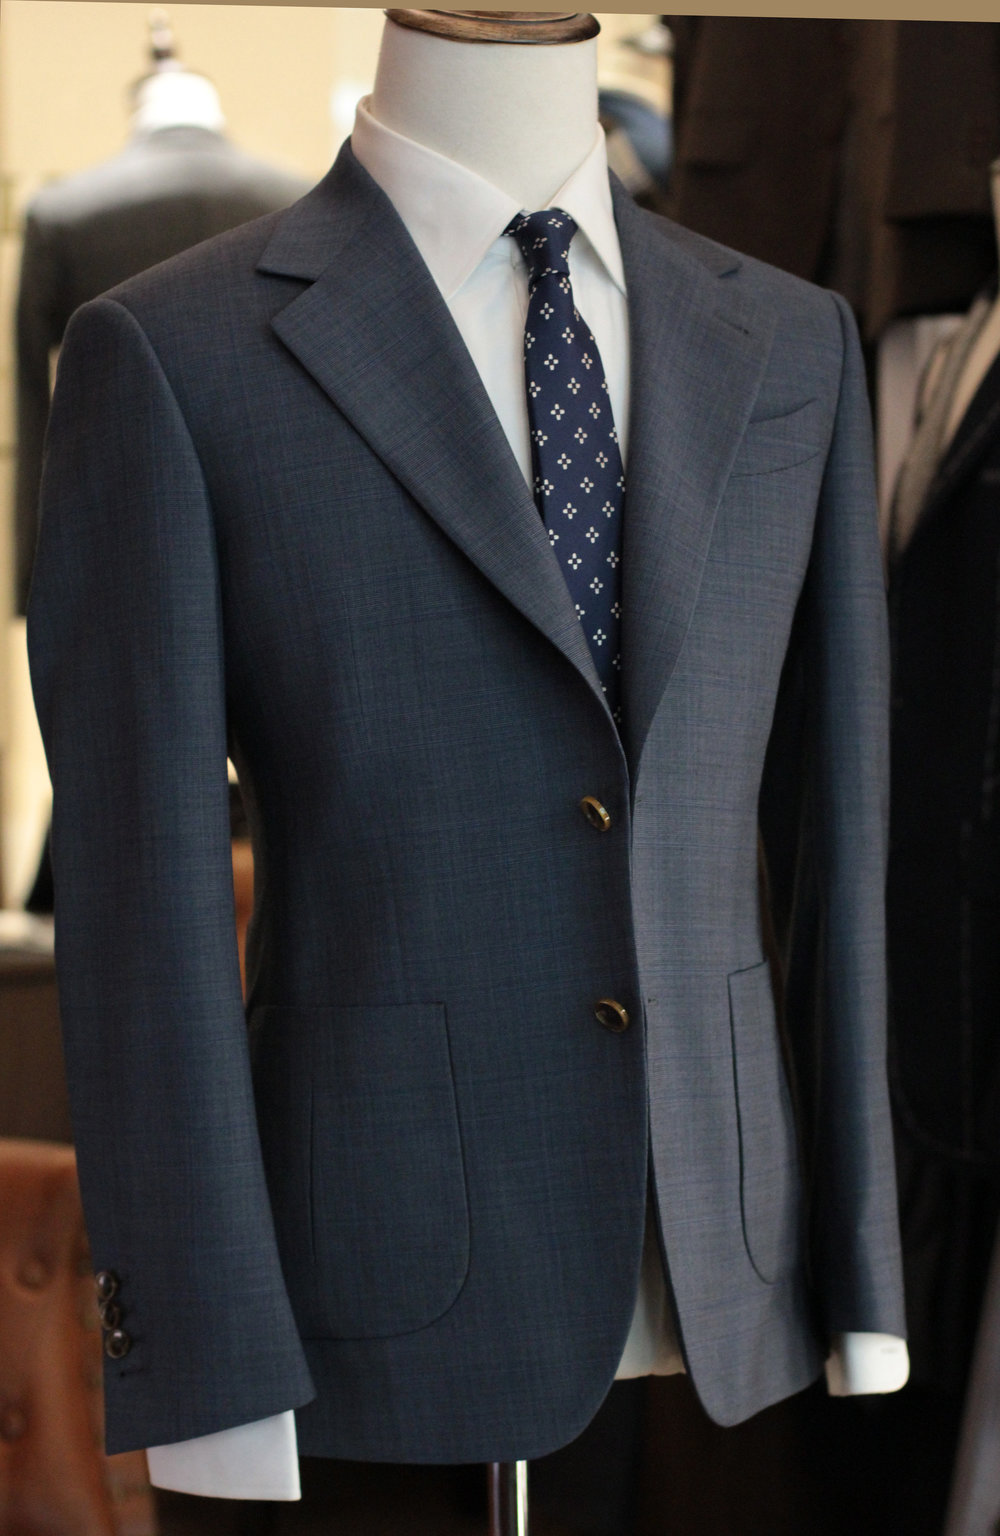 Made Suits Gangsta Notched Lapel Suit Herringbone Navy Blue Made to Measure Suit notched.JPG